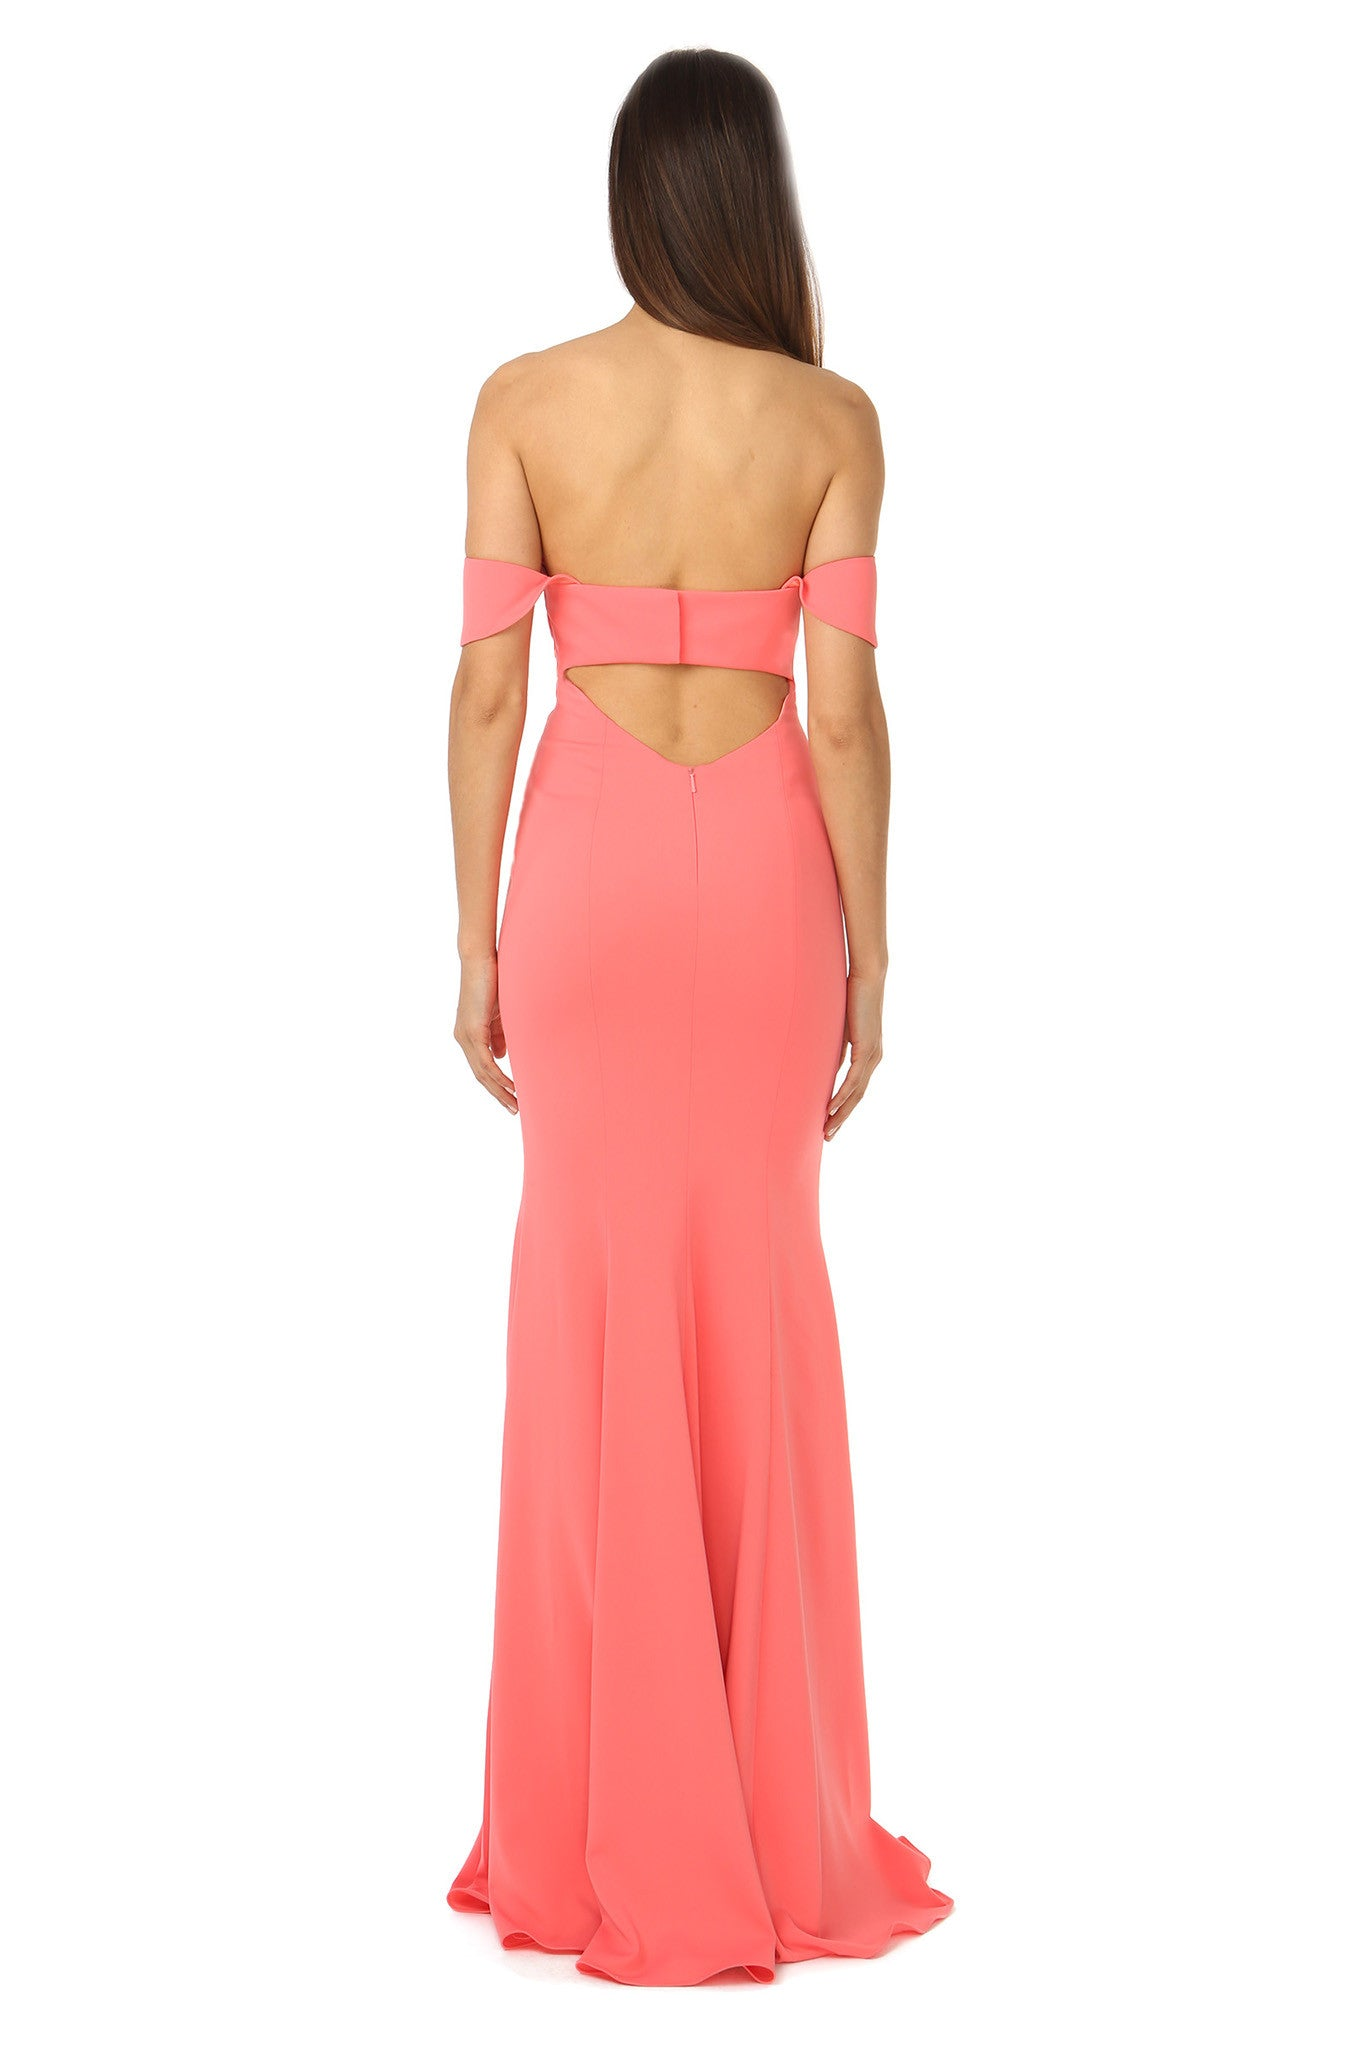 Jay Godfrey Off-the-Shoulder Coral Gown - Back View